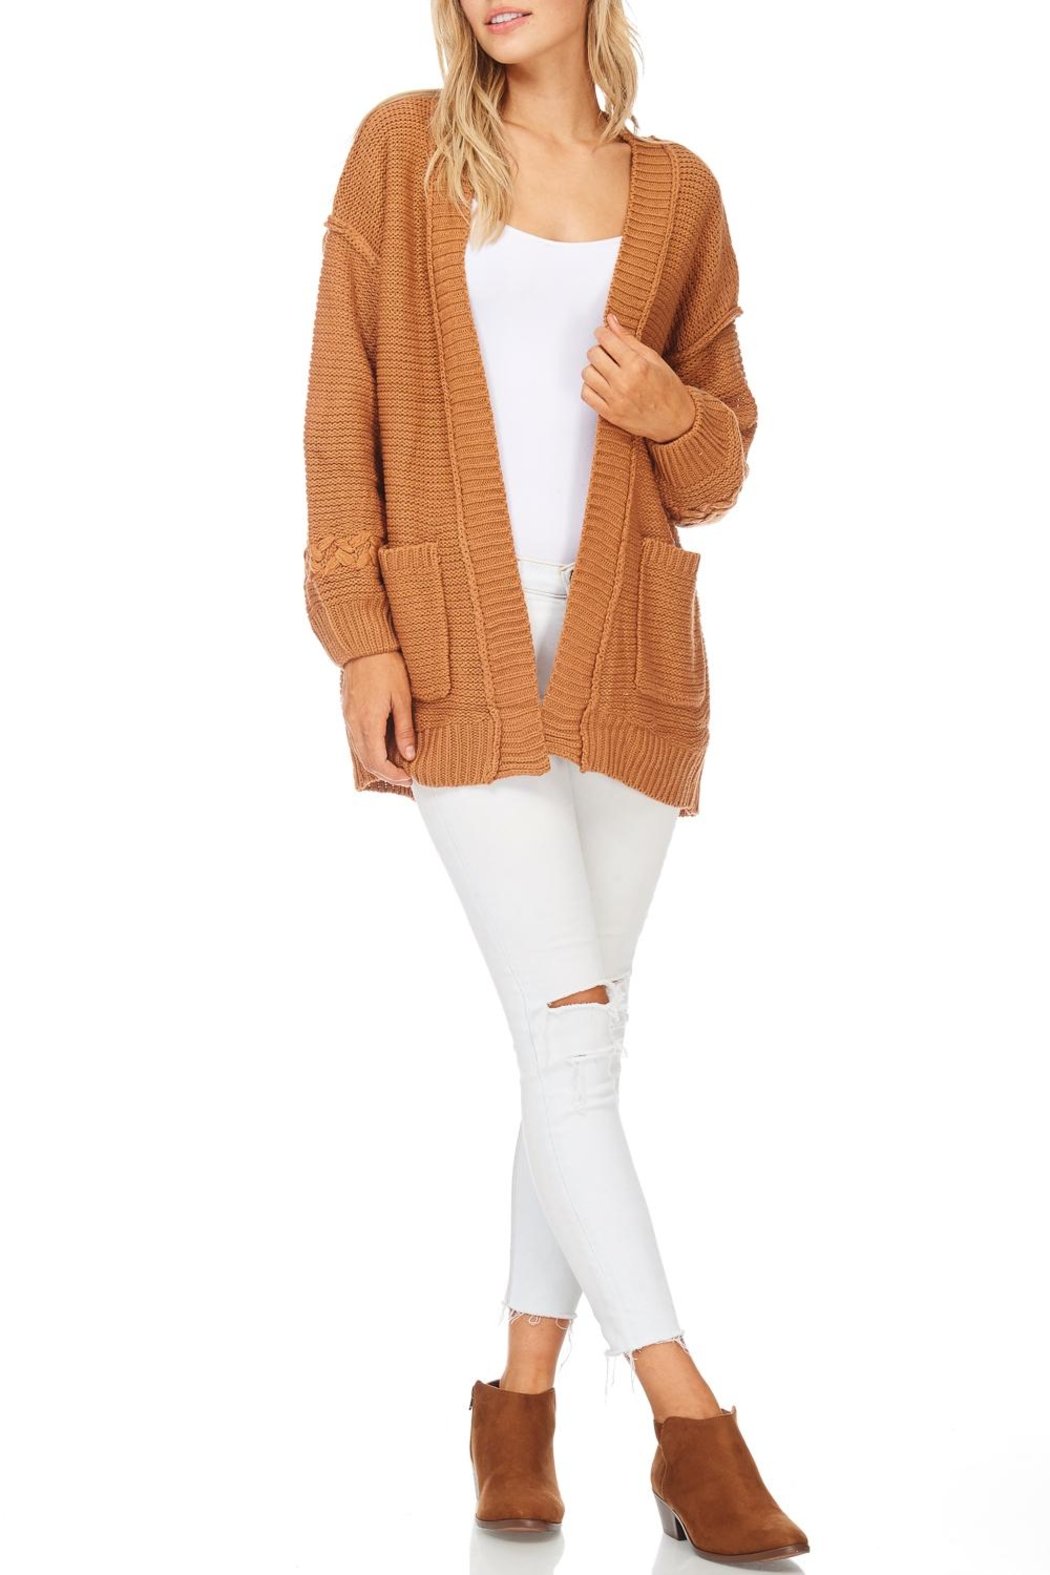 LoveRiche Solid Knit Sweater Cardigan - Main Image